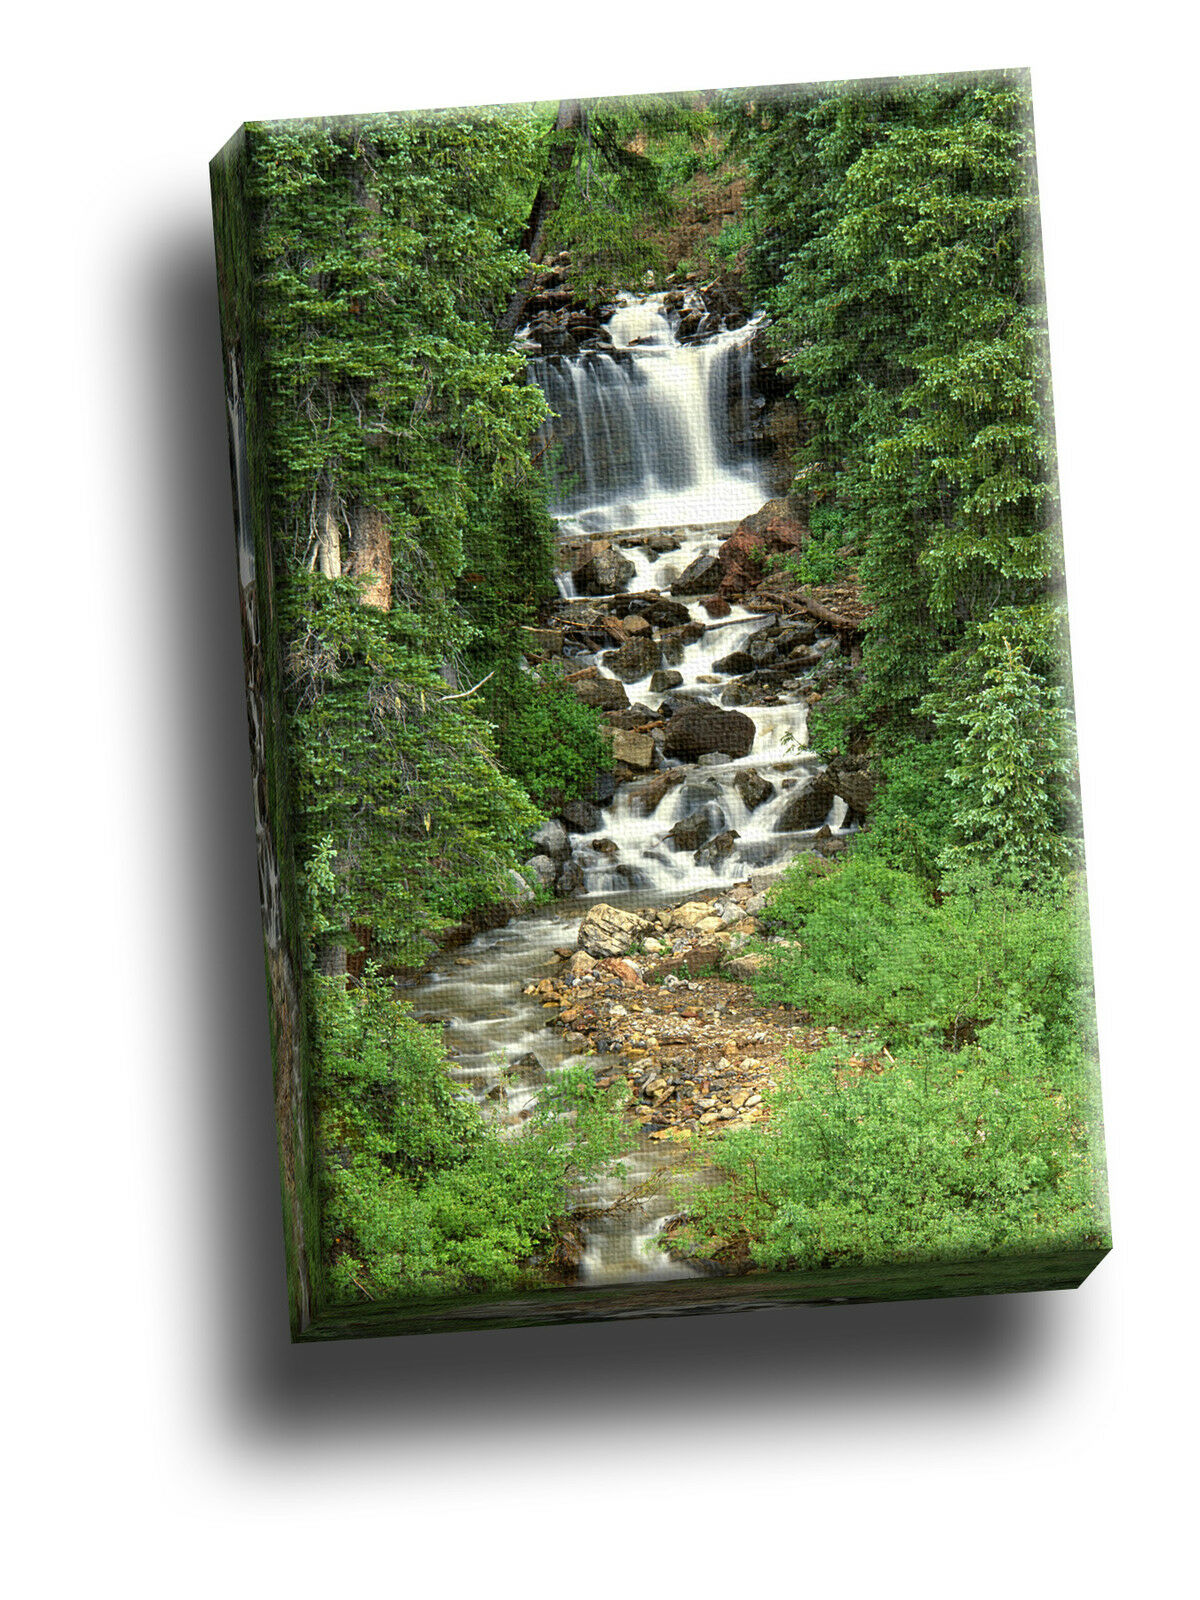 Cascade sur deep creek, san juan national portrait giclee toile photo art